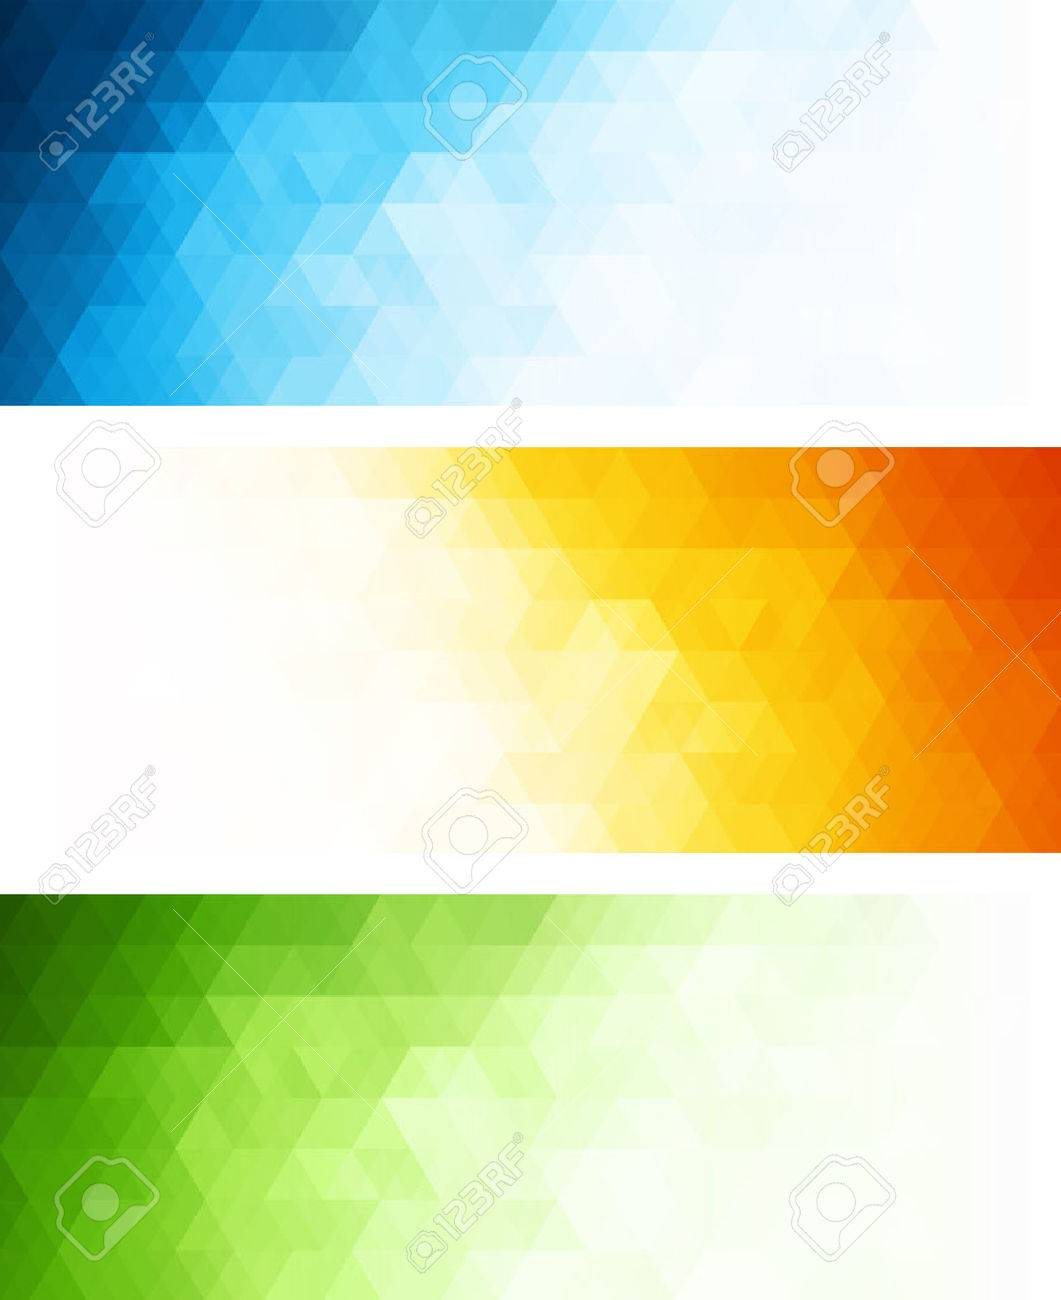 Vector color abstract geometric banner with triangle. Stock Vector - 28522244